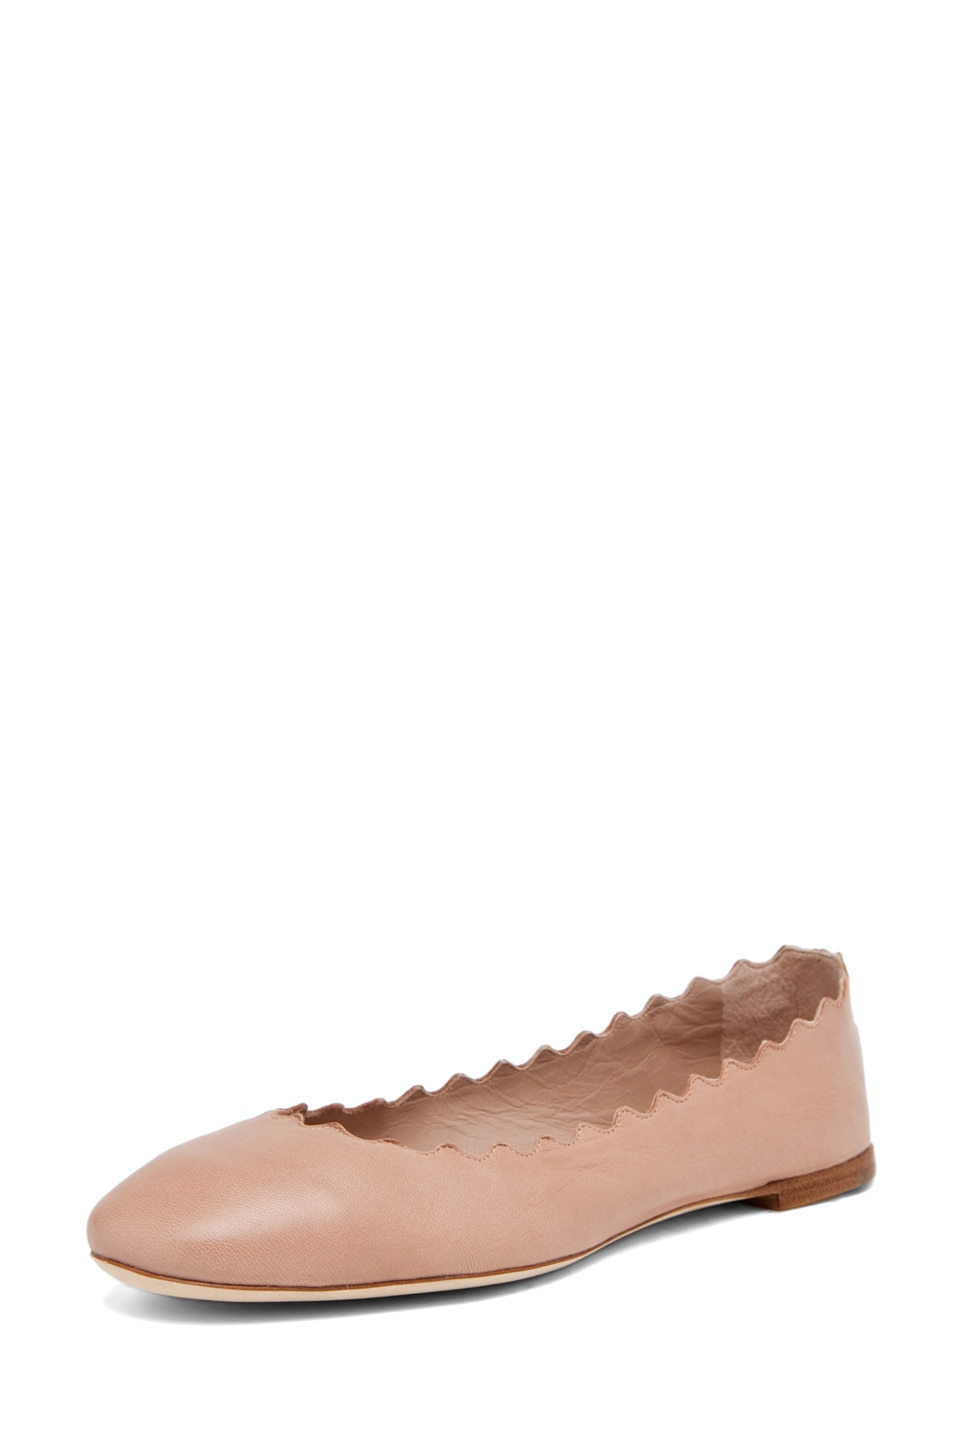 Image 2 of Chloe Leather Scalloped Flats in Nude